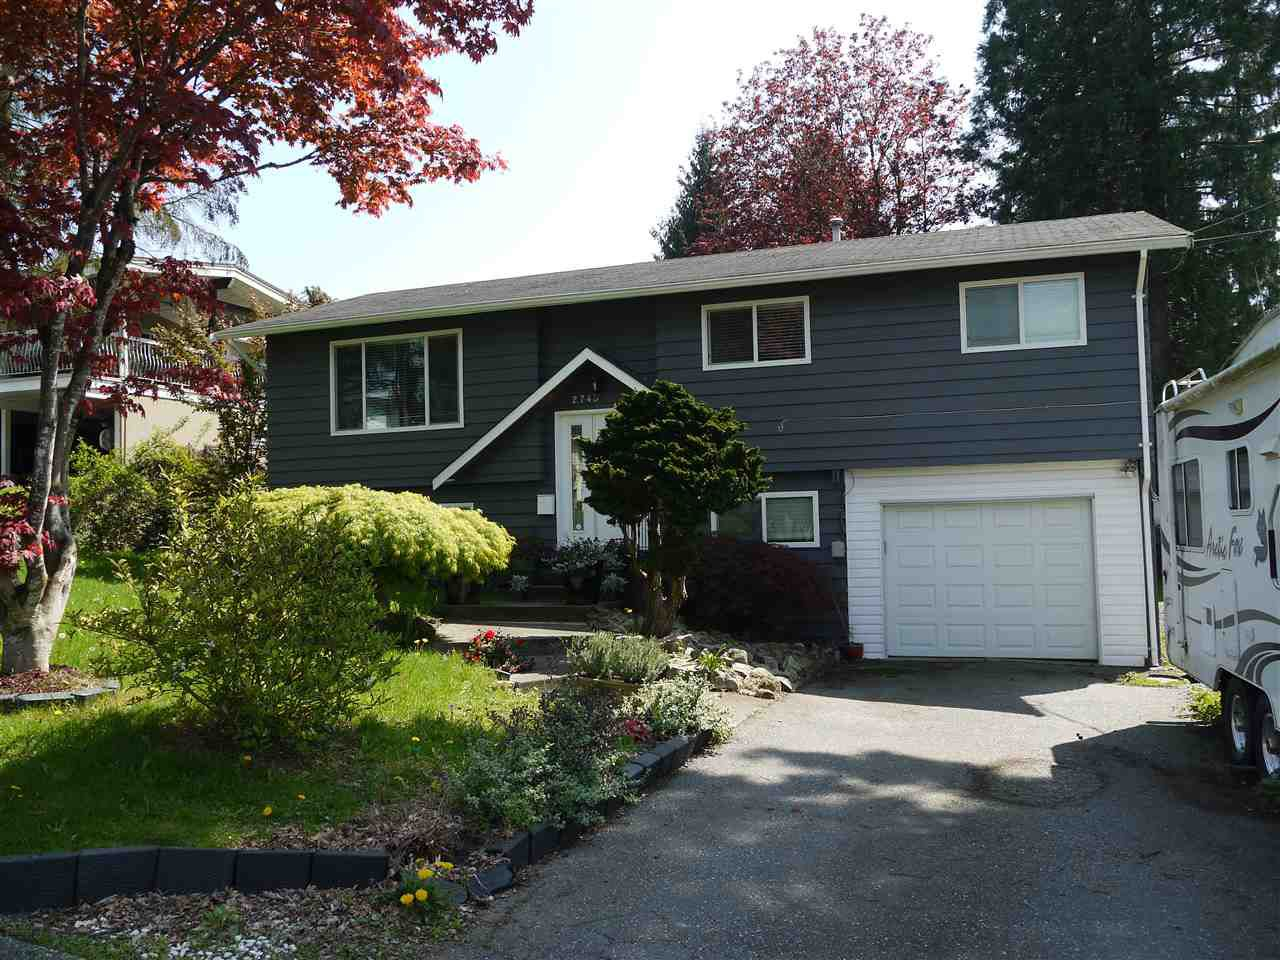 """Main Photo: 2743 VALEMONT Crescent in Abbotsford: Abbotsford West House for sale in """"Springhill"""" : MLS®# R2264731"""